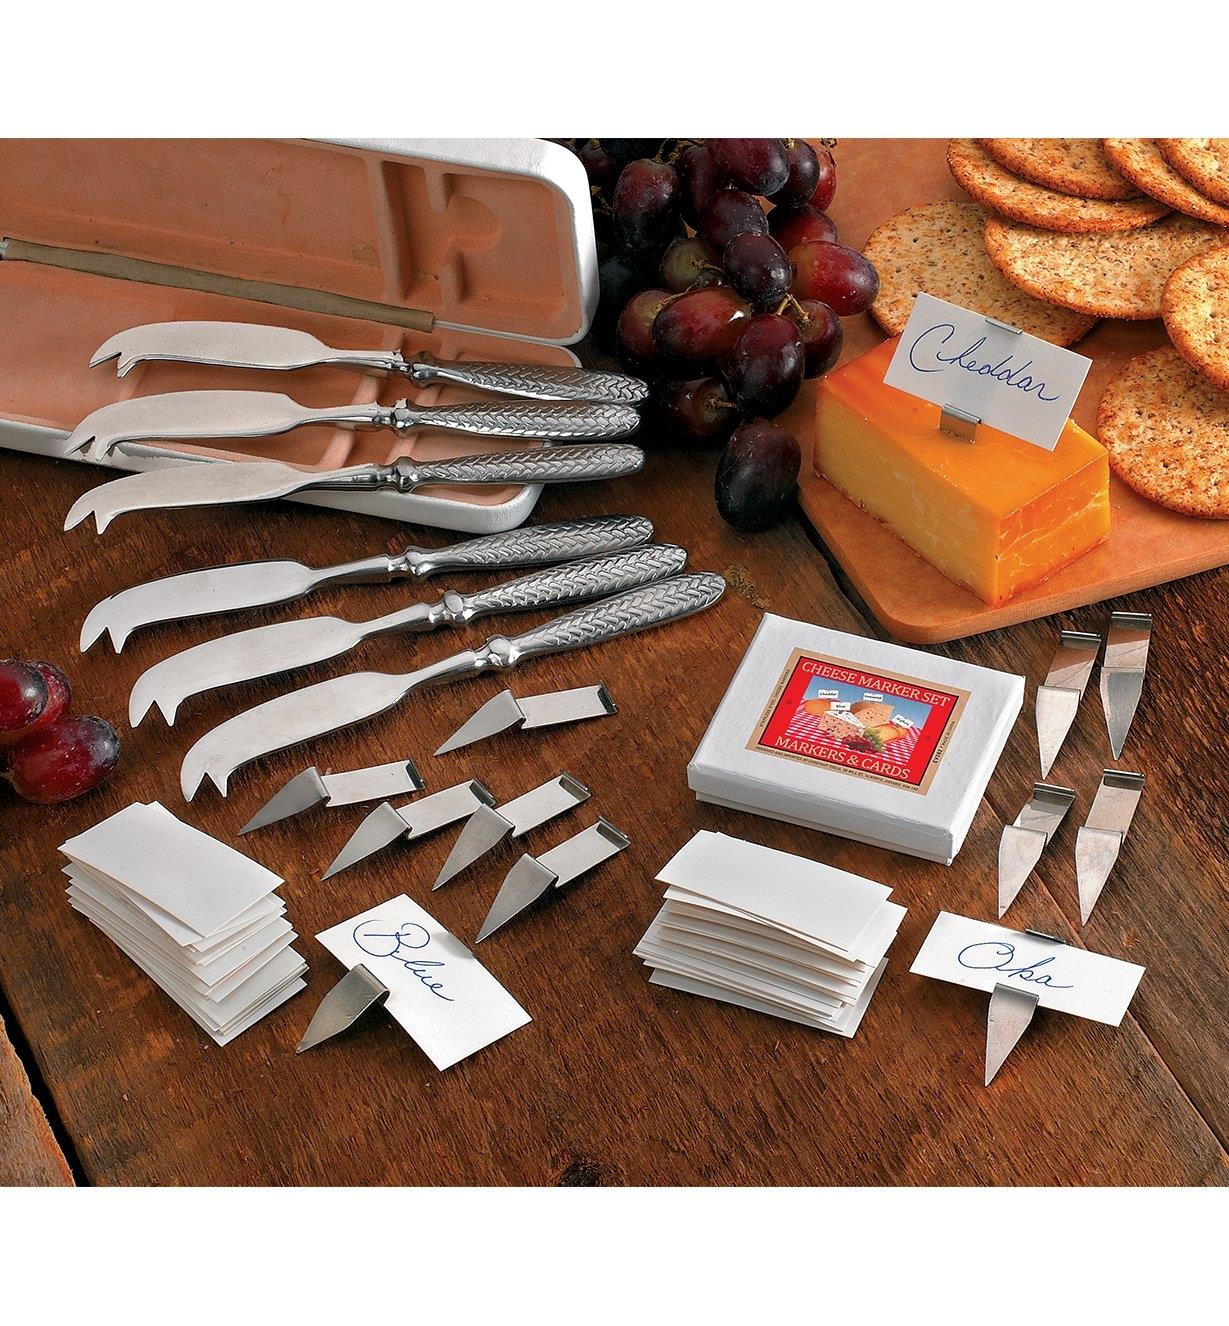 Cheese Knife and Marker Set spread out on a table beside a platter of cheese, crackers and grapes